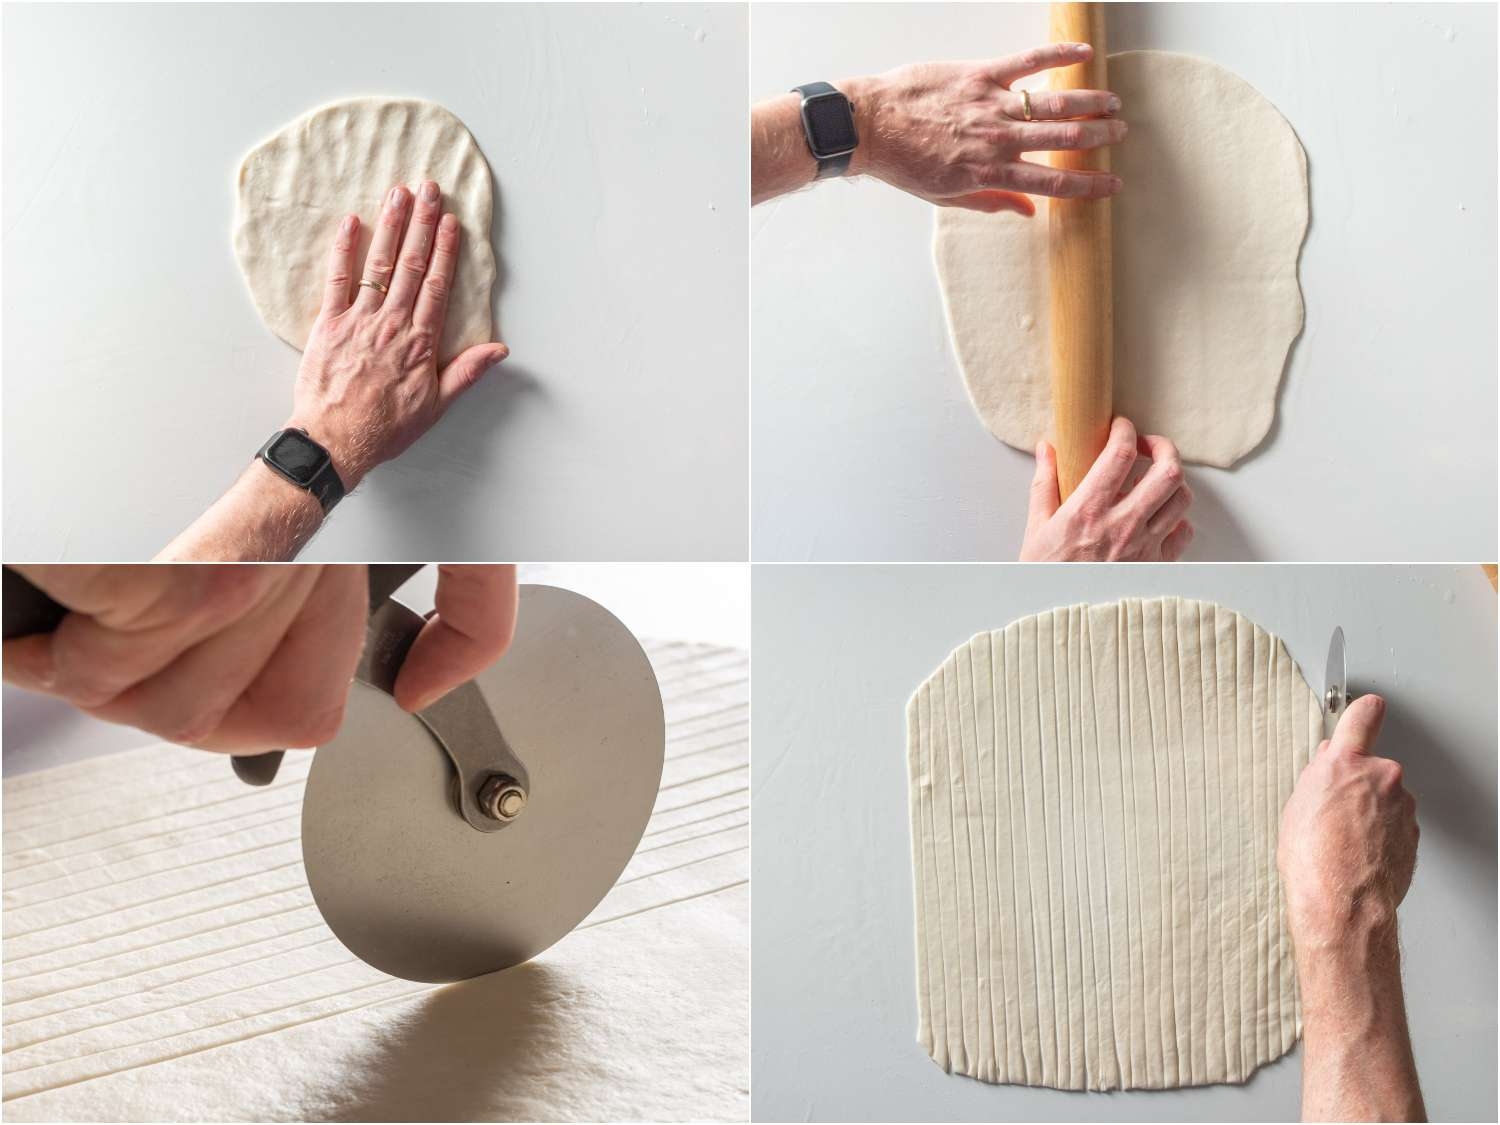 Pressing and rolling out the dough, then cutting it into strips